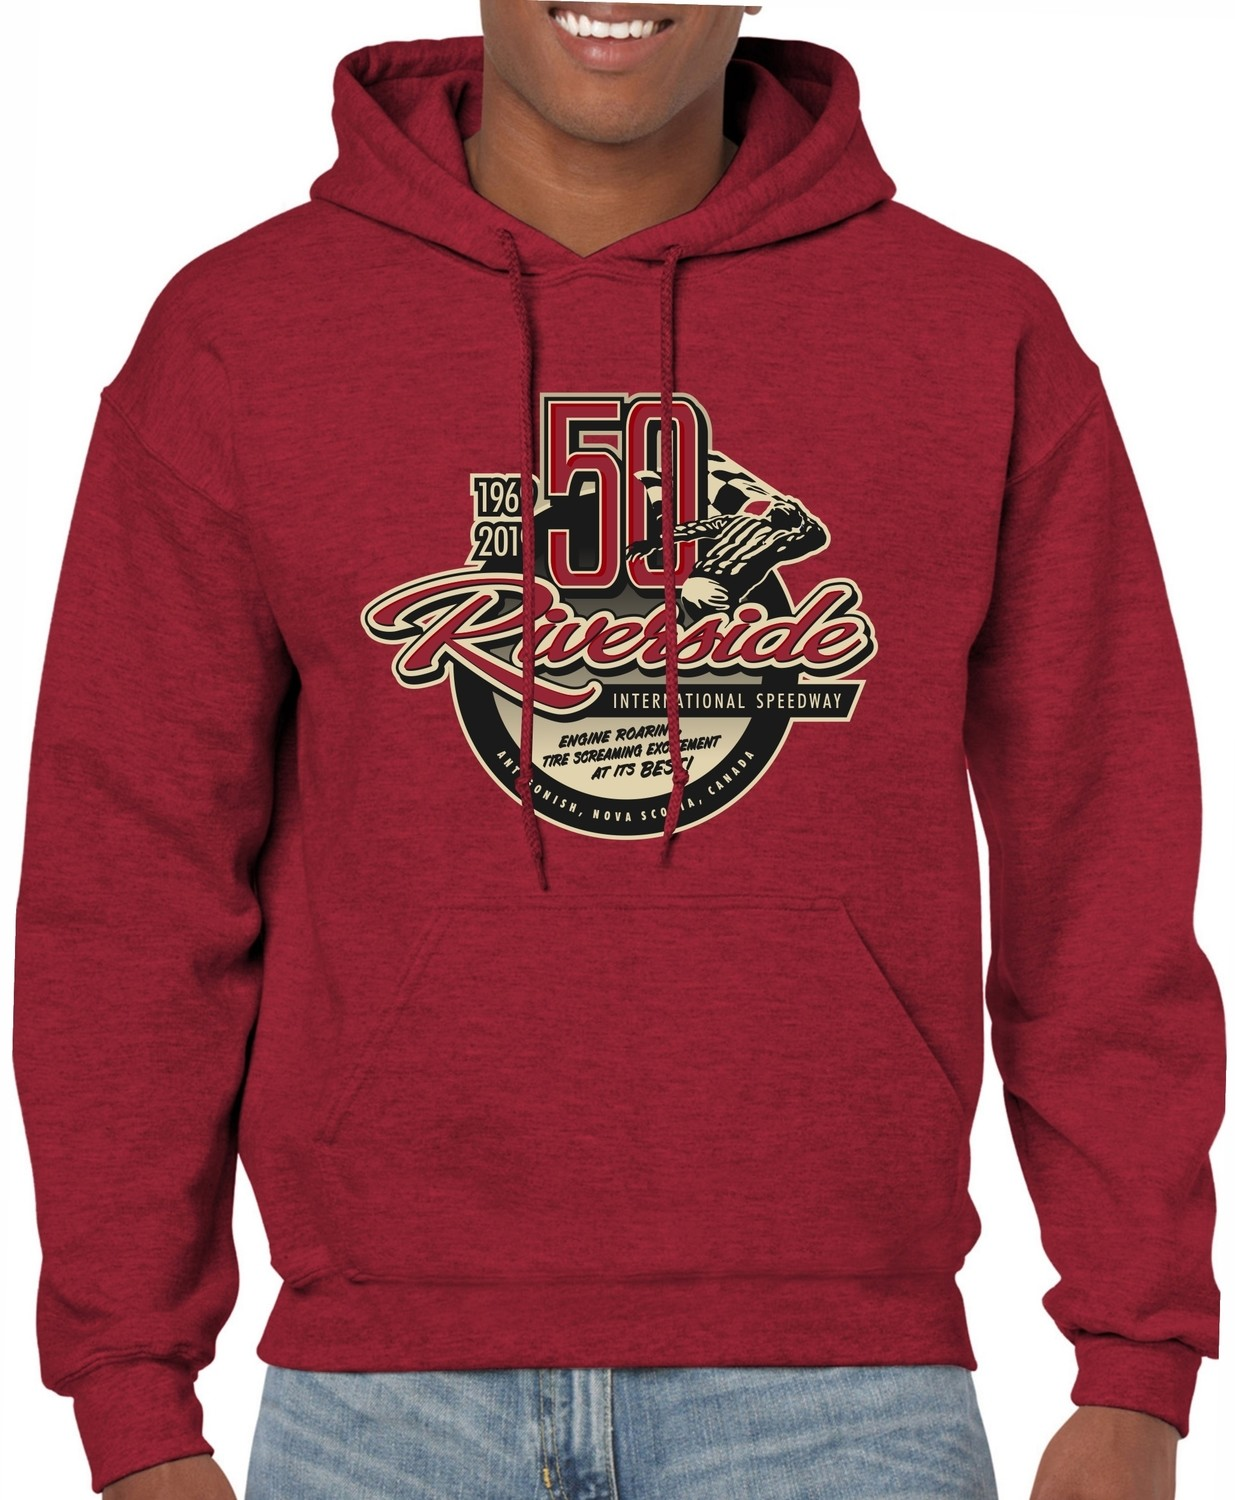 RIS 50 Hoodie - Limited Availability